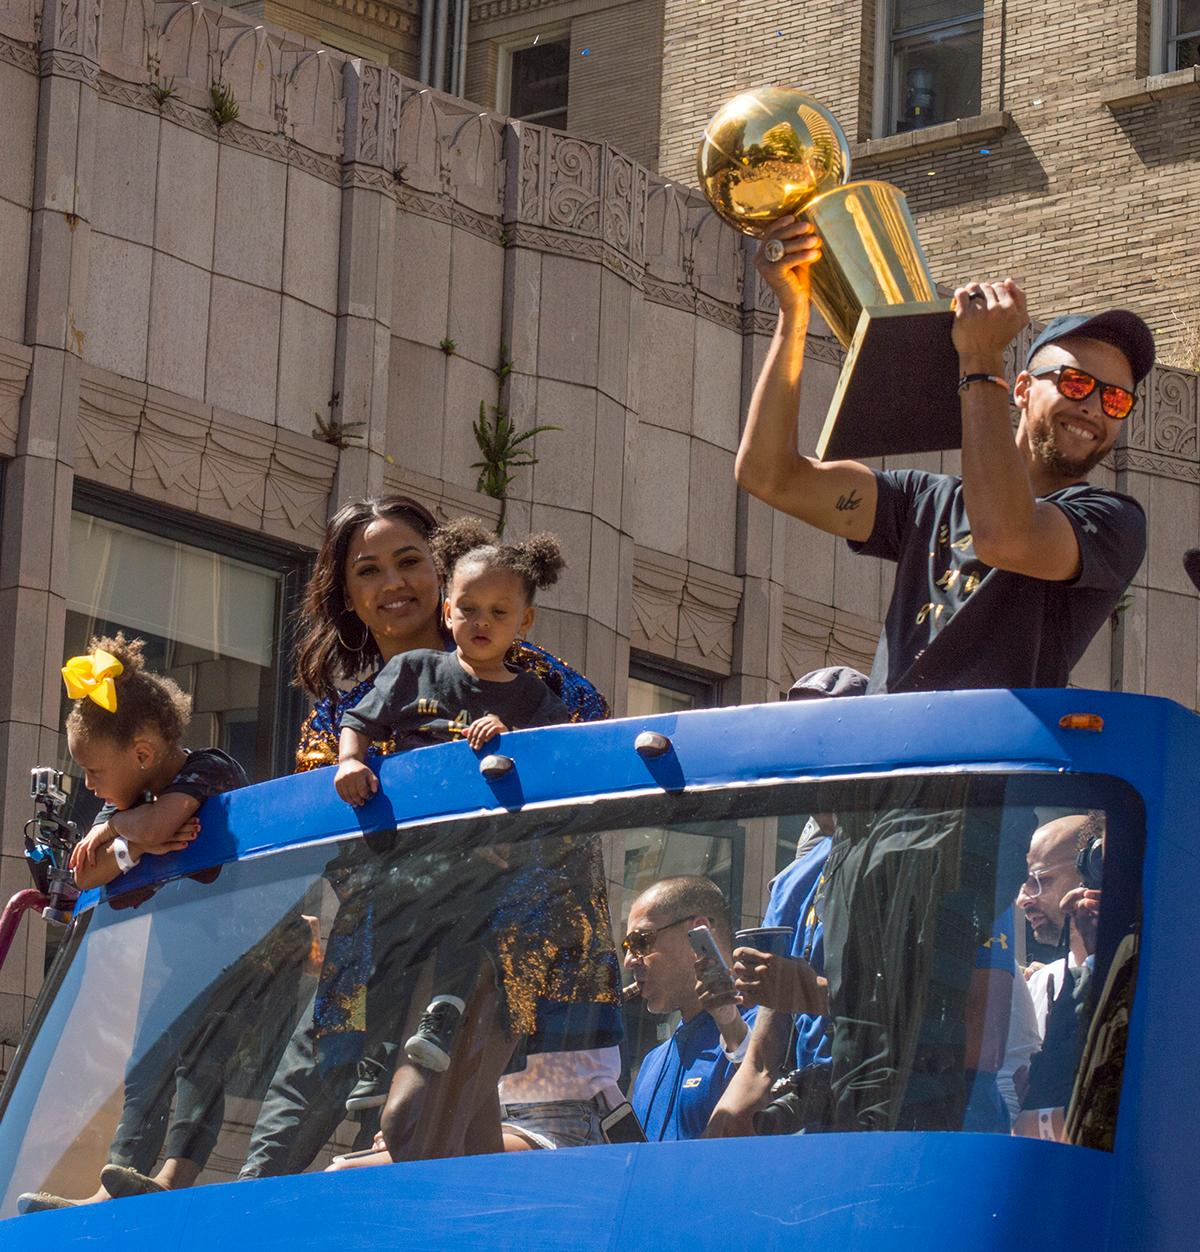 The crowd of fans cheers as Stephen Curry holds the 2017 NBA Championship trophy during the Golden State Warriors victory parade in Oakland, California. Photo by Emily Gonzalez, Oregon News Lab.